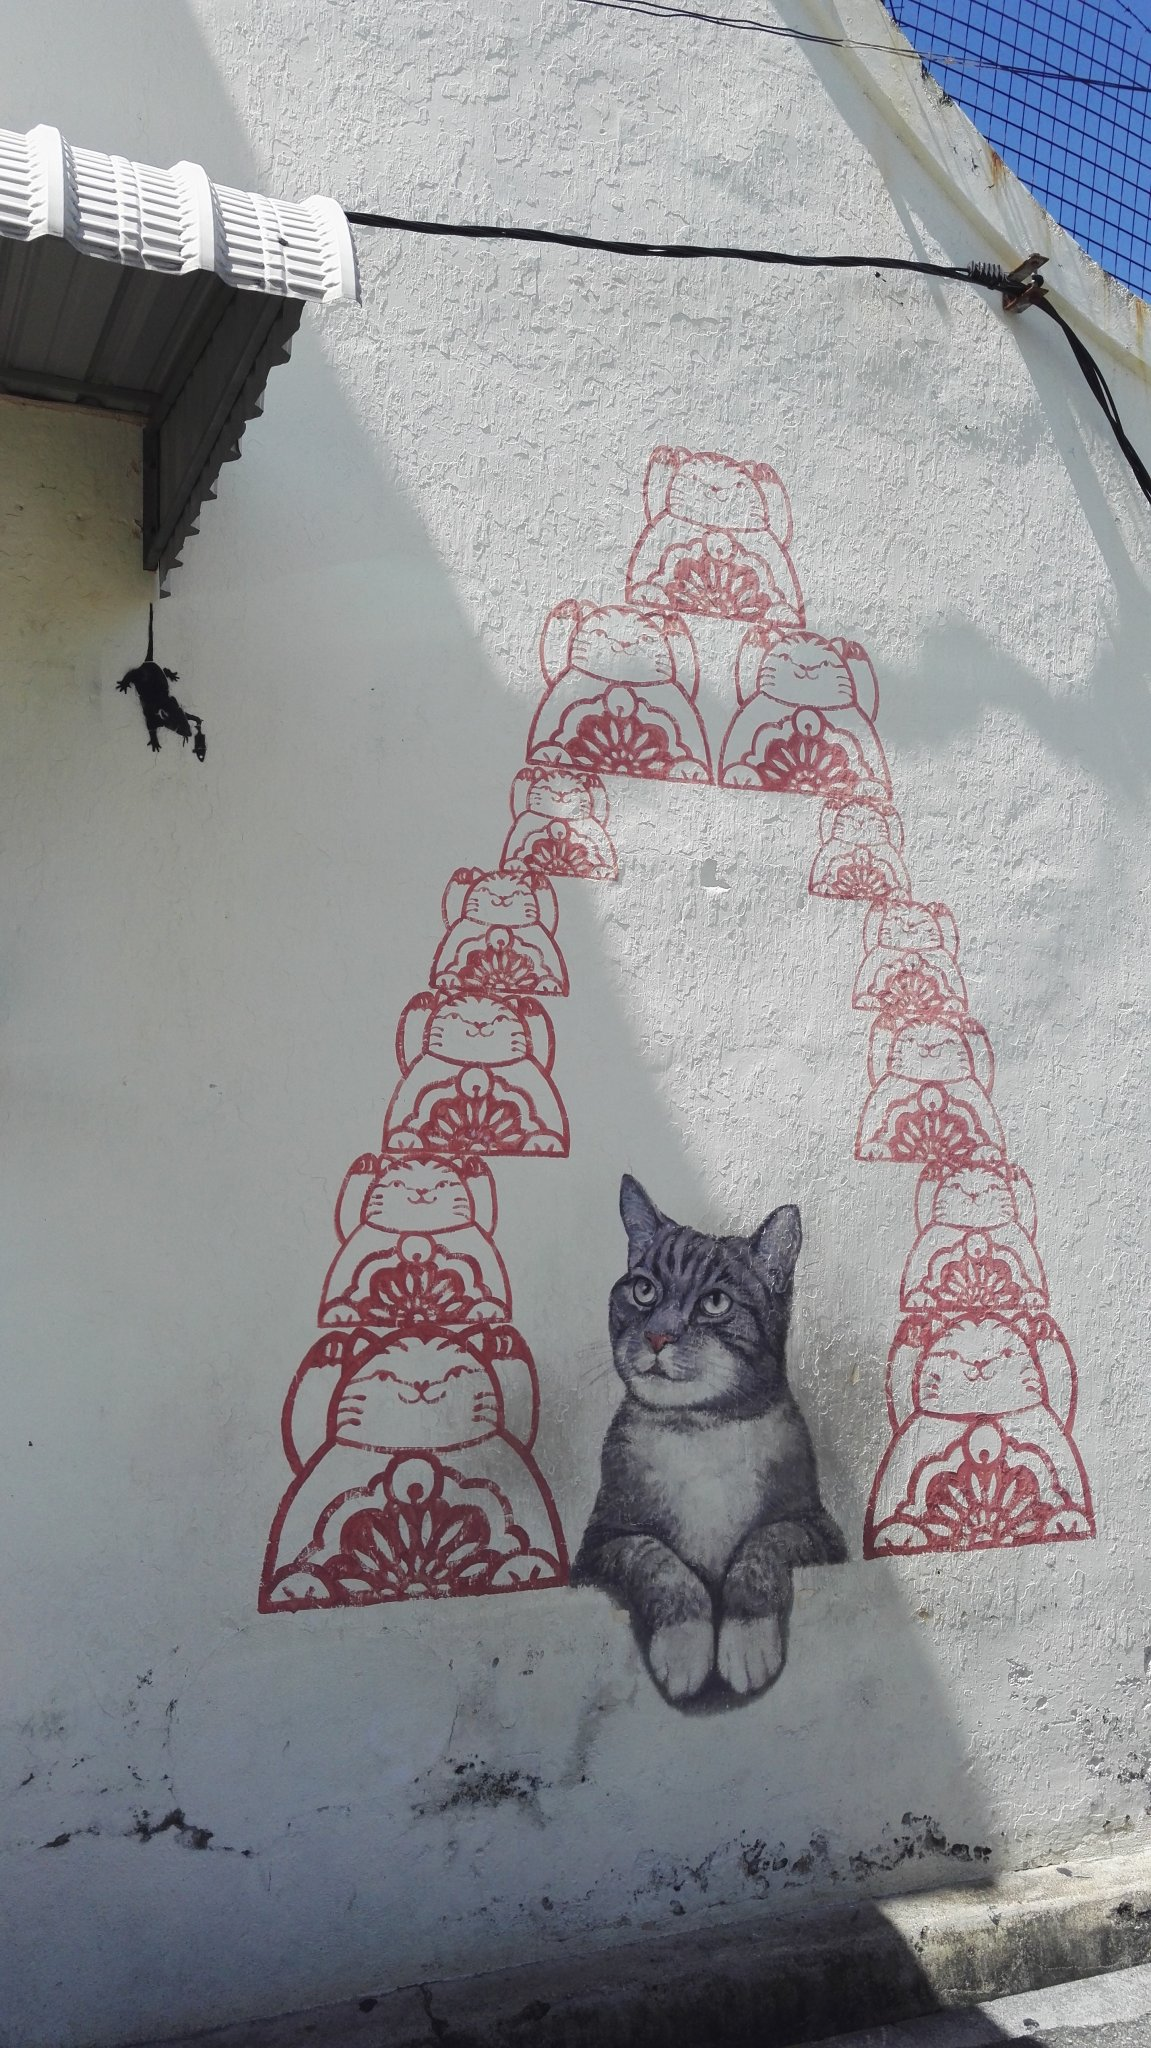 Penang visa run offers possibilities for seeing awesome street art, like this Cat themed mural